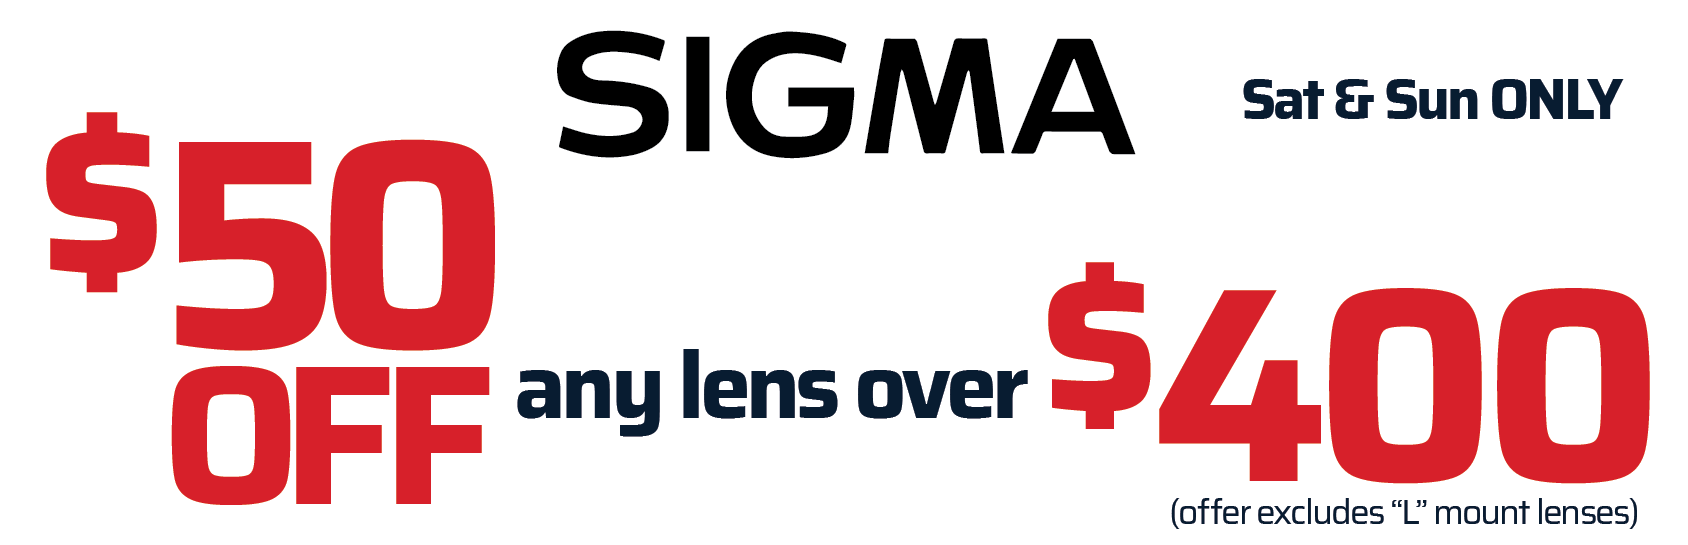 Sigma Lens Savings